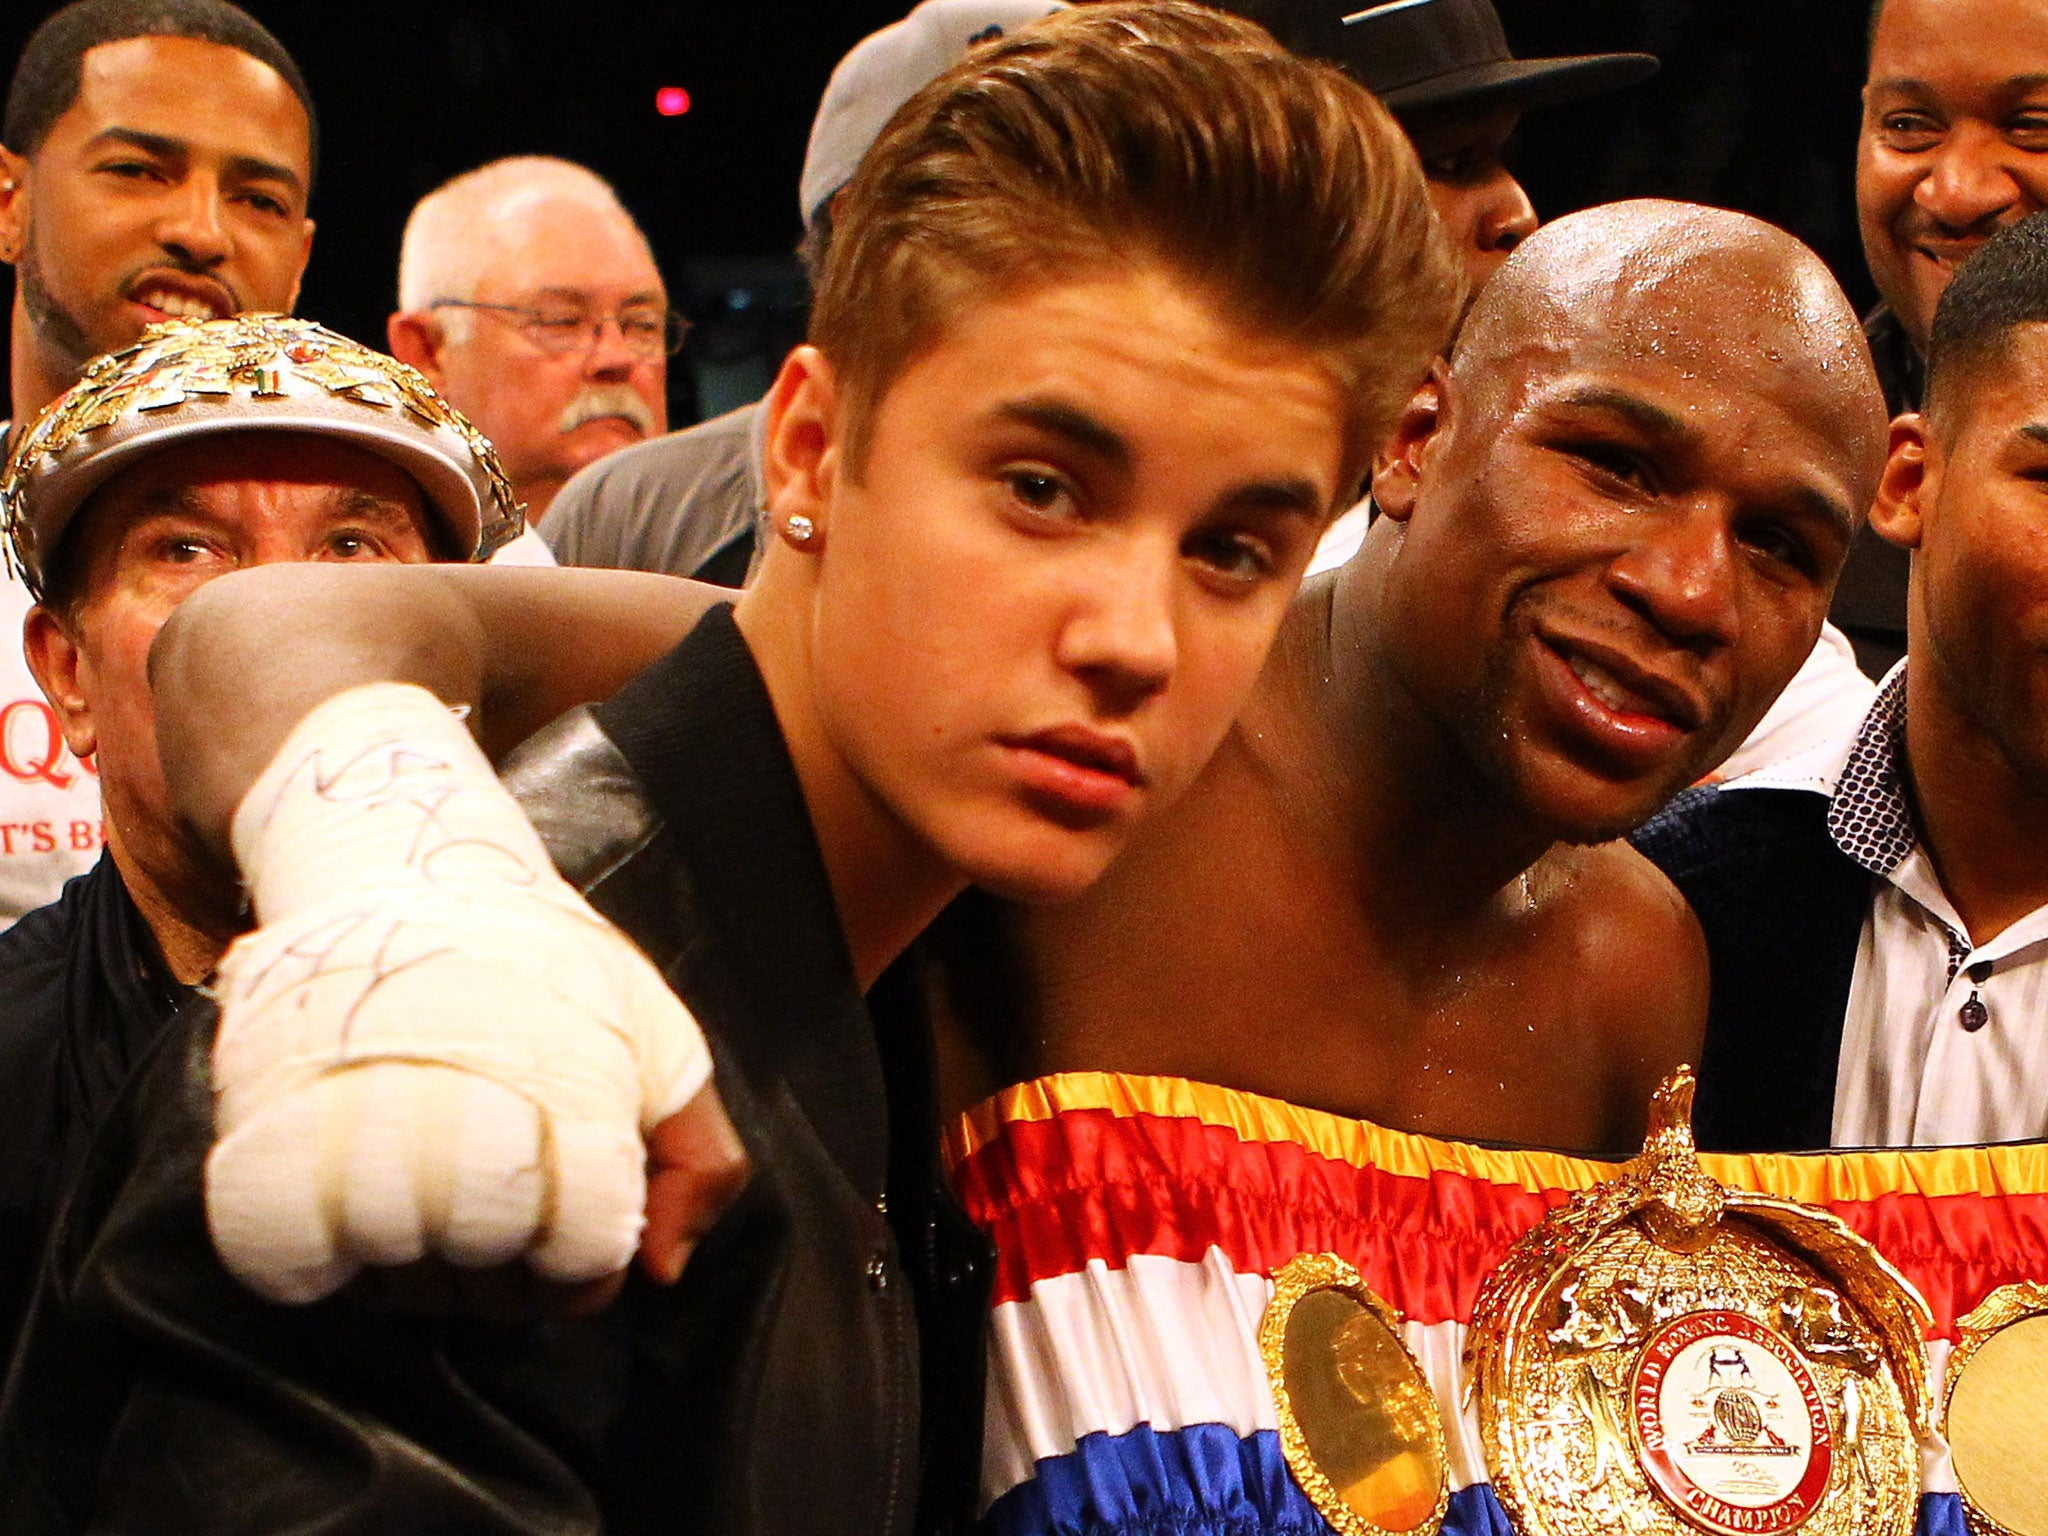 https://static.independent.co.uk/s3fs-public/thumbnails/image/2015/04/29/12/Justin-Bieber-Floyd-Mayweather.jpg